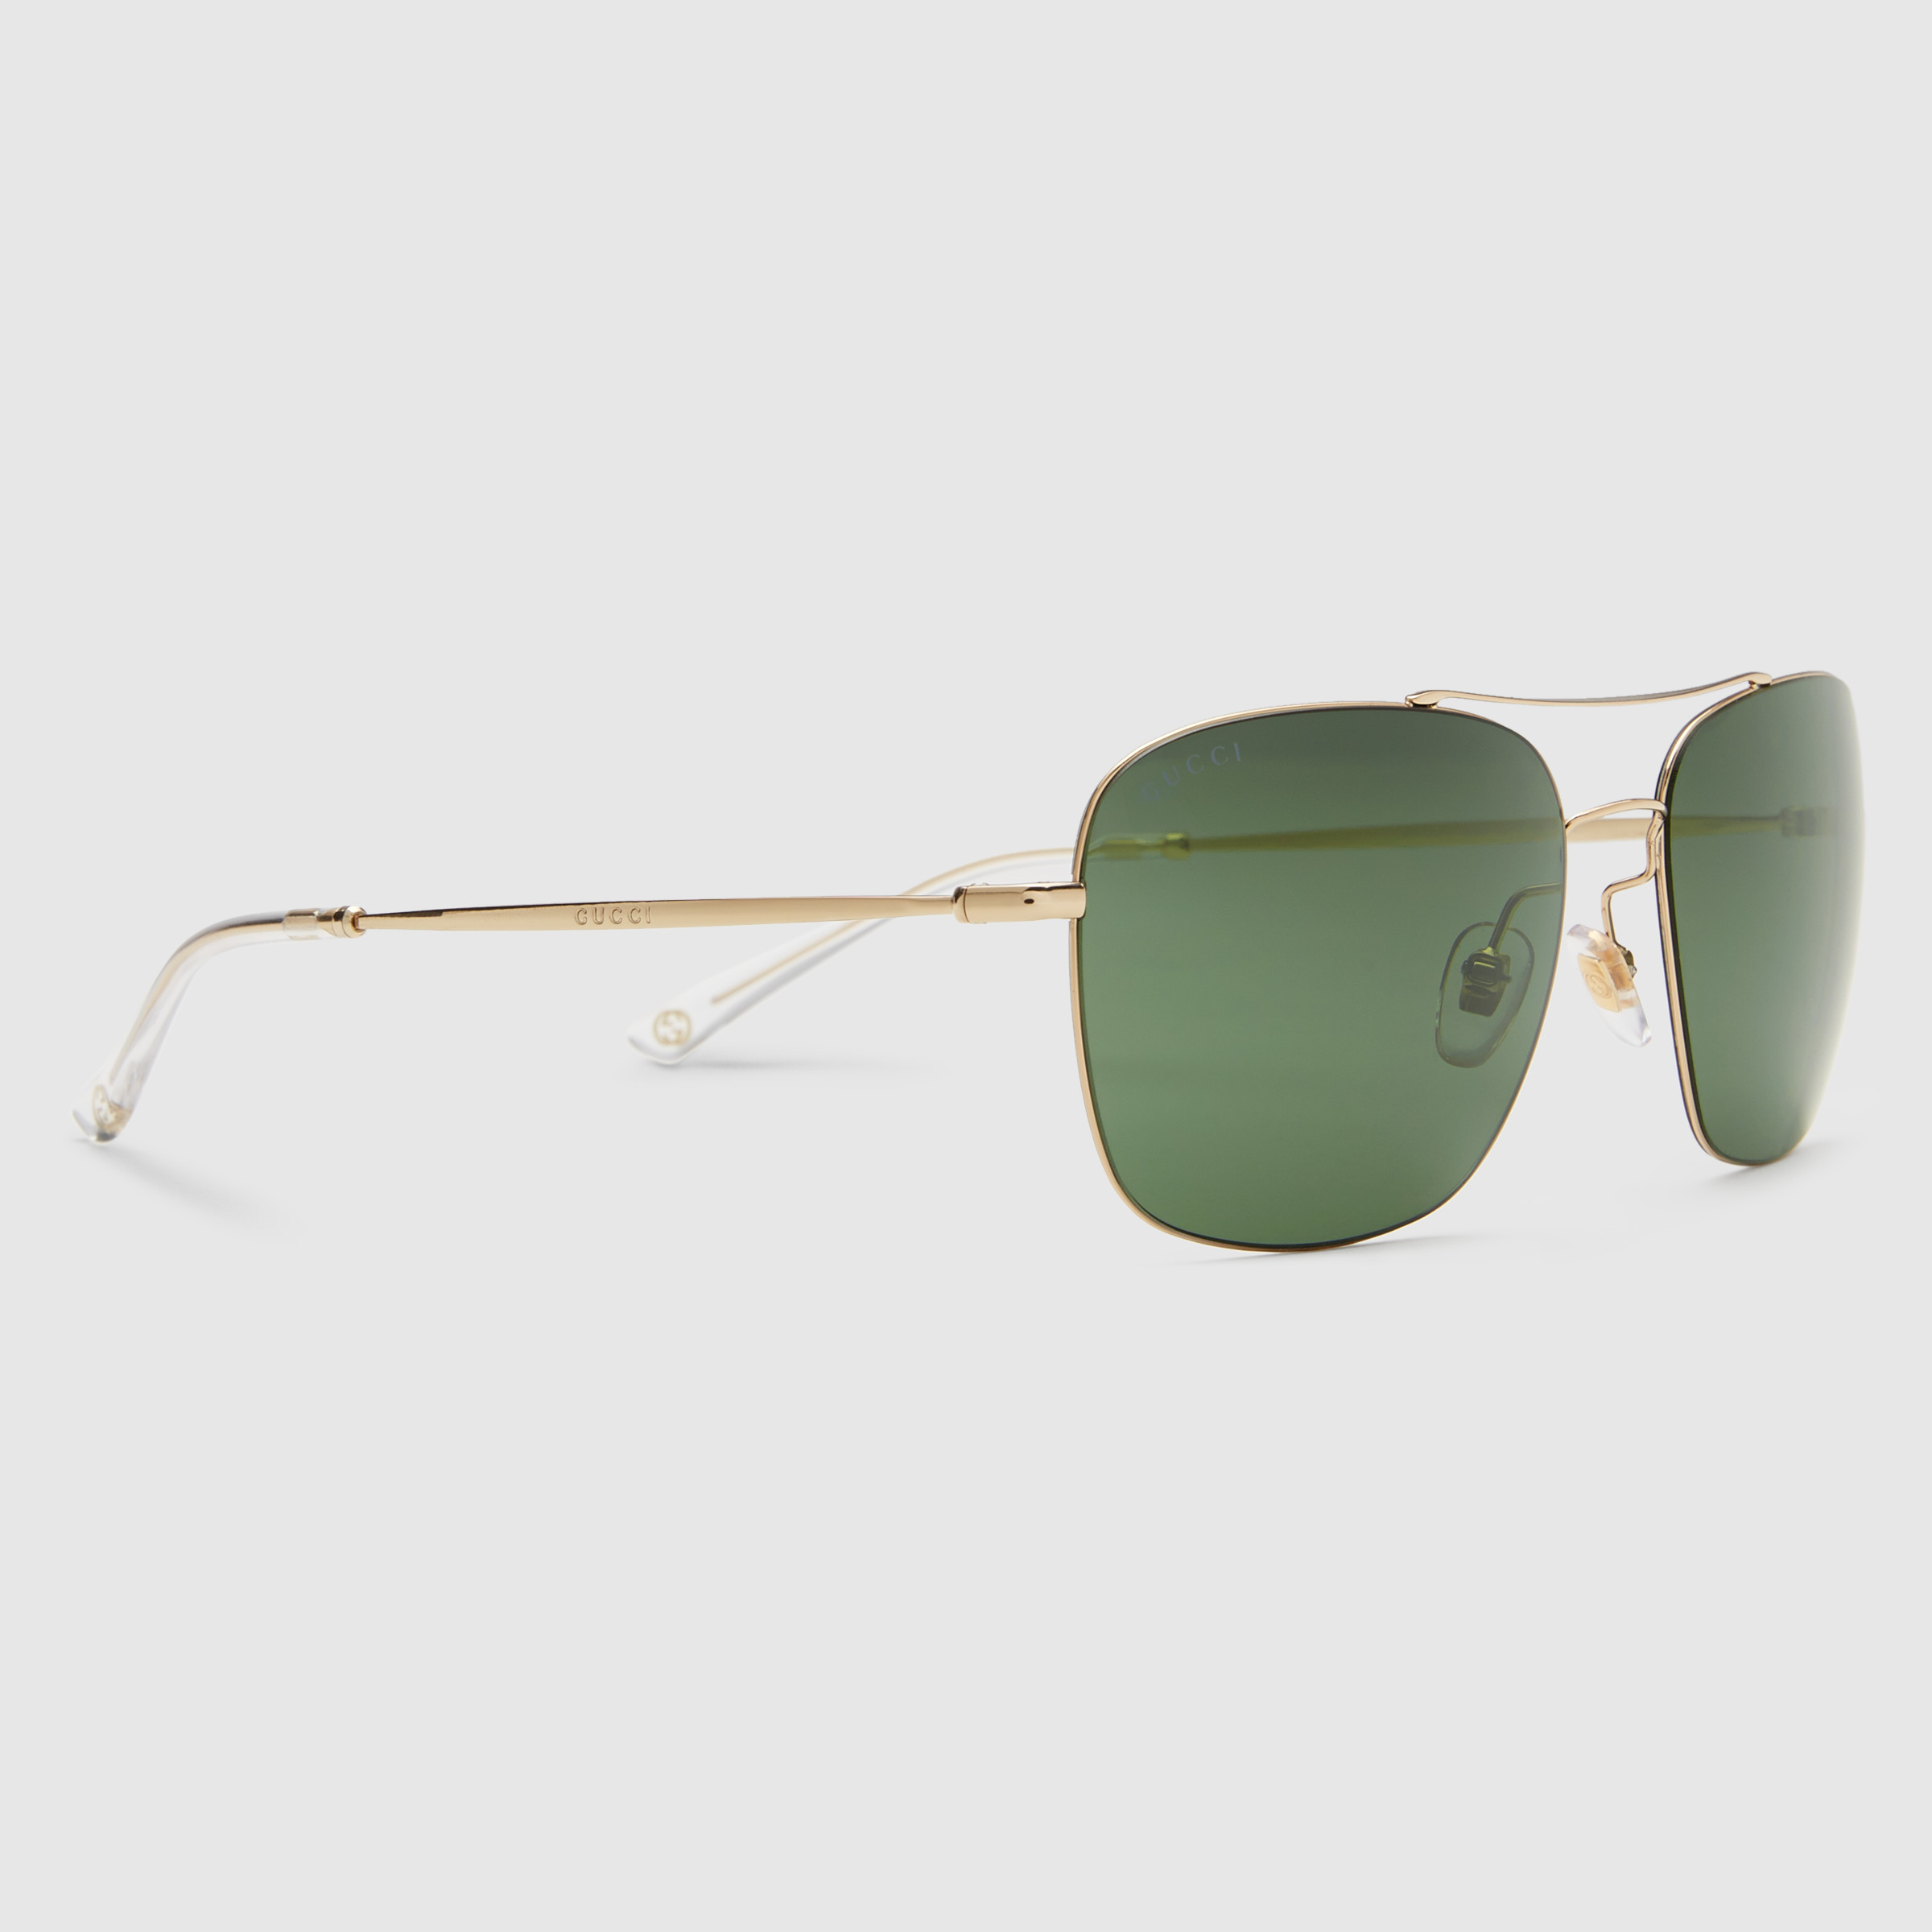 15405c758a Lyst - Gucci Steel And Metal Square-frame Sunglasses in Metallic for Men